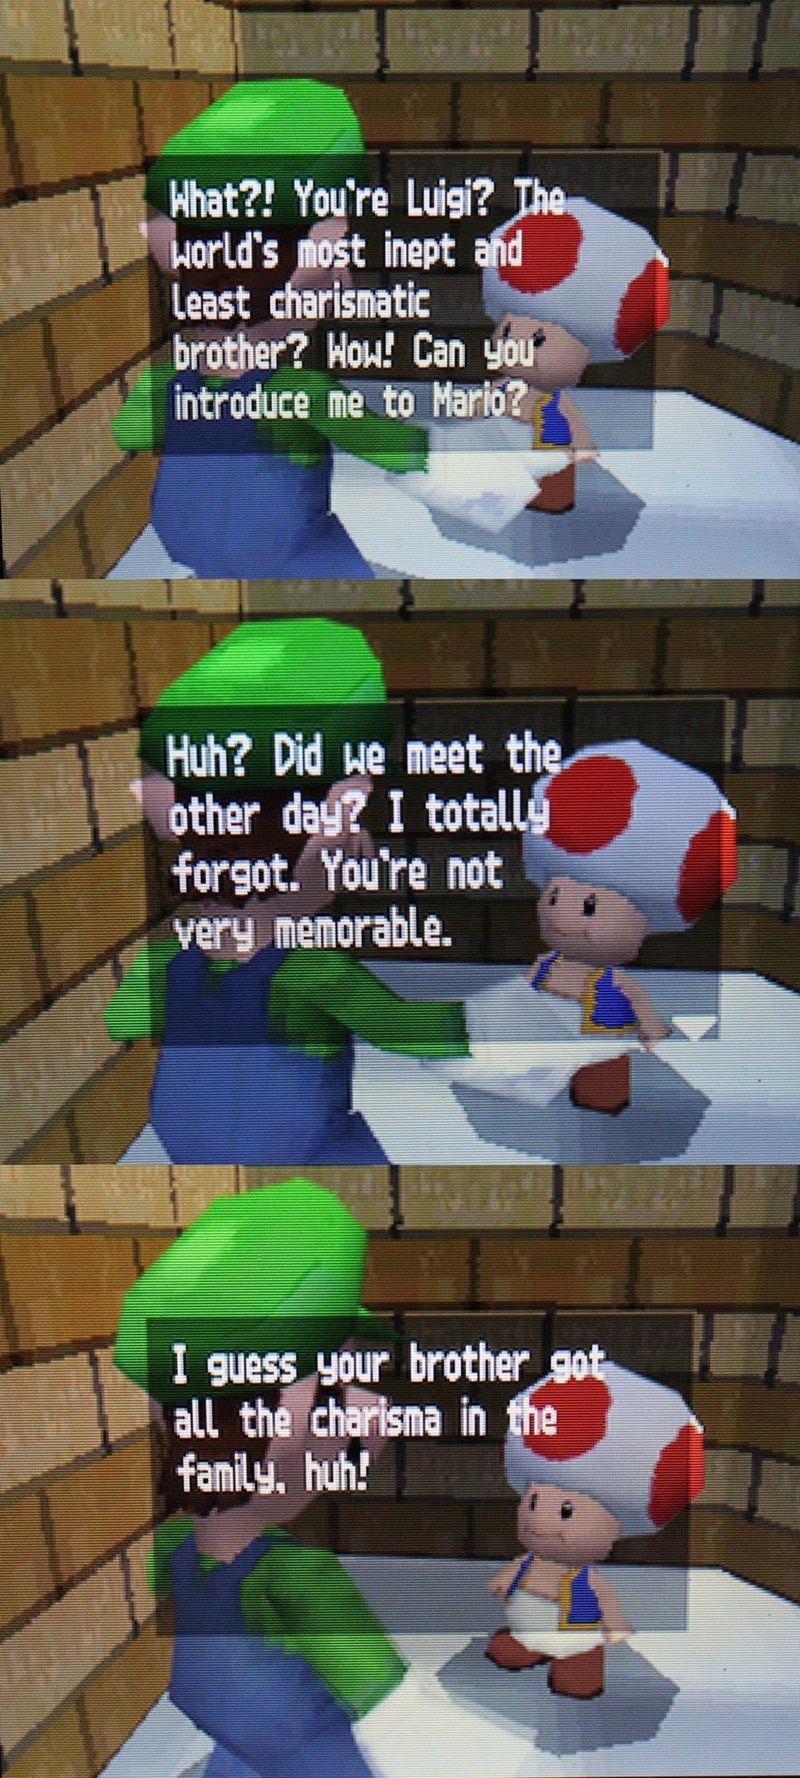 toad-insults-luigi-in-harsh-fashion